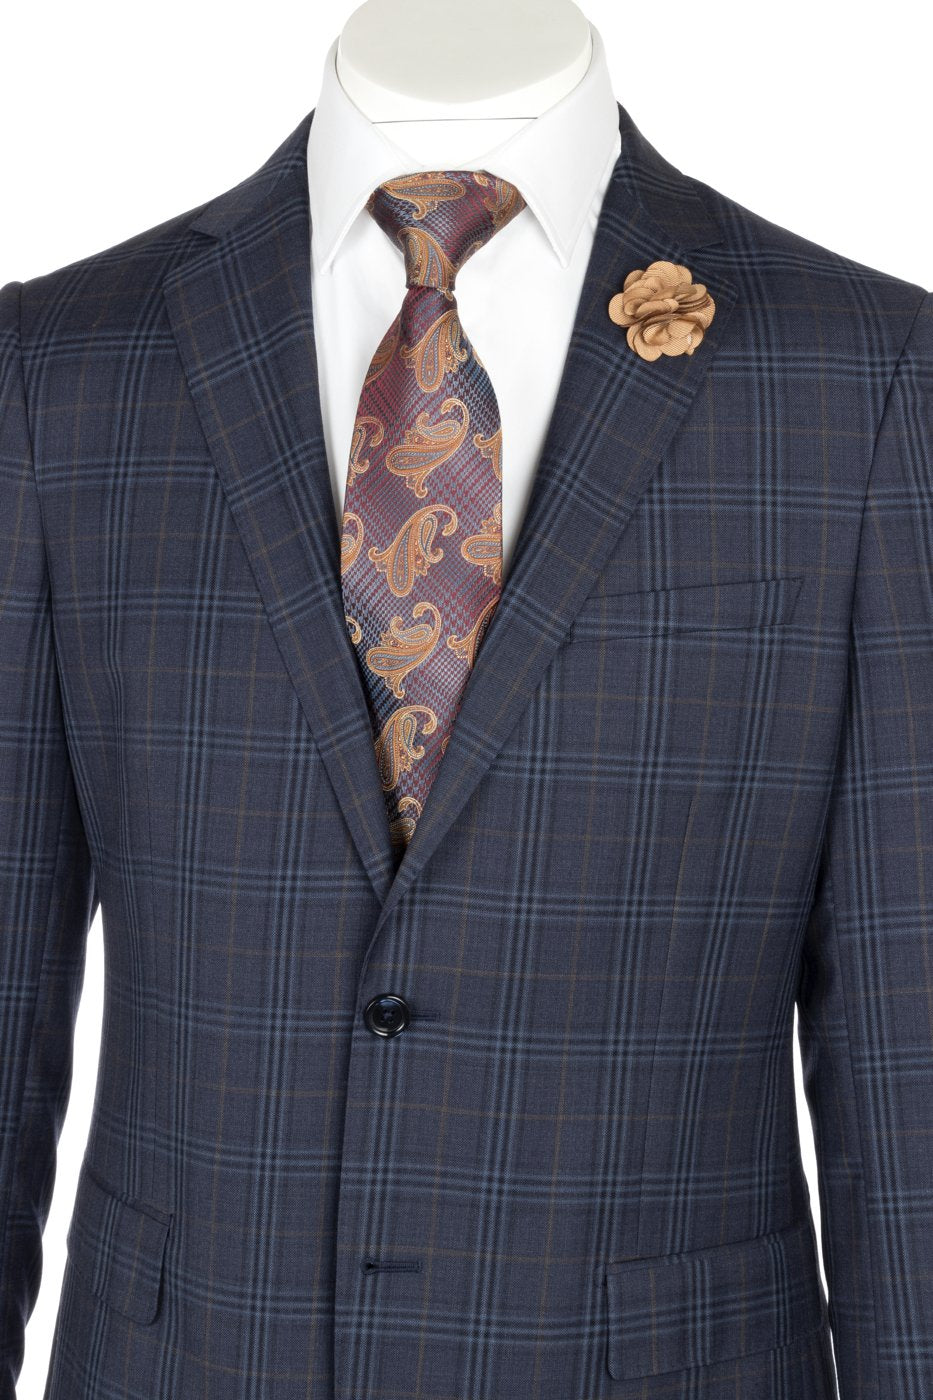 Porto Denim Blue with Orange and Blue Windowpane, Slim Fit, Pure Wool Suit by Tiglio Luxe 74264/2